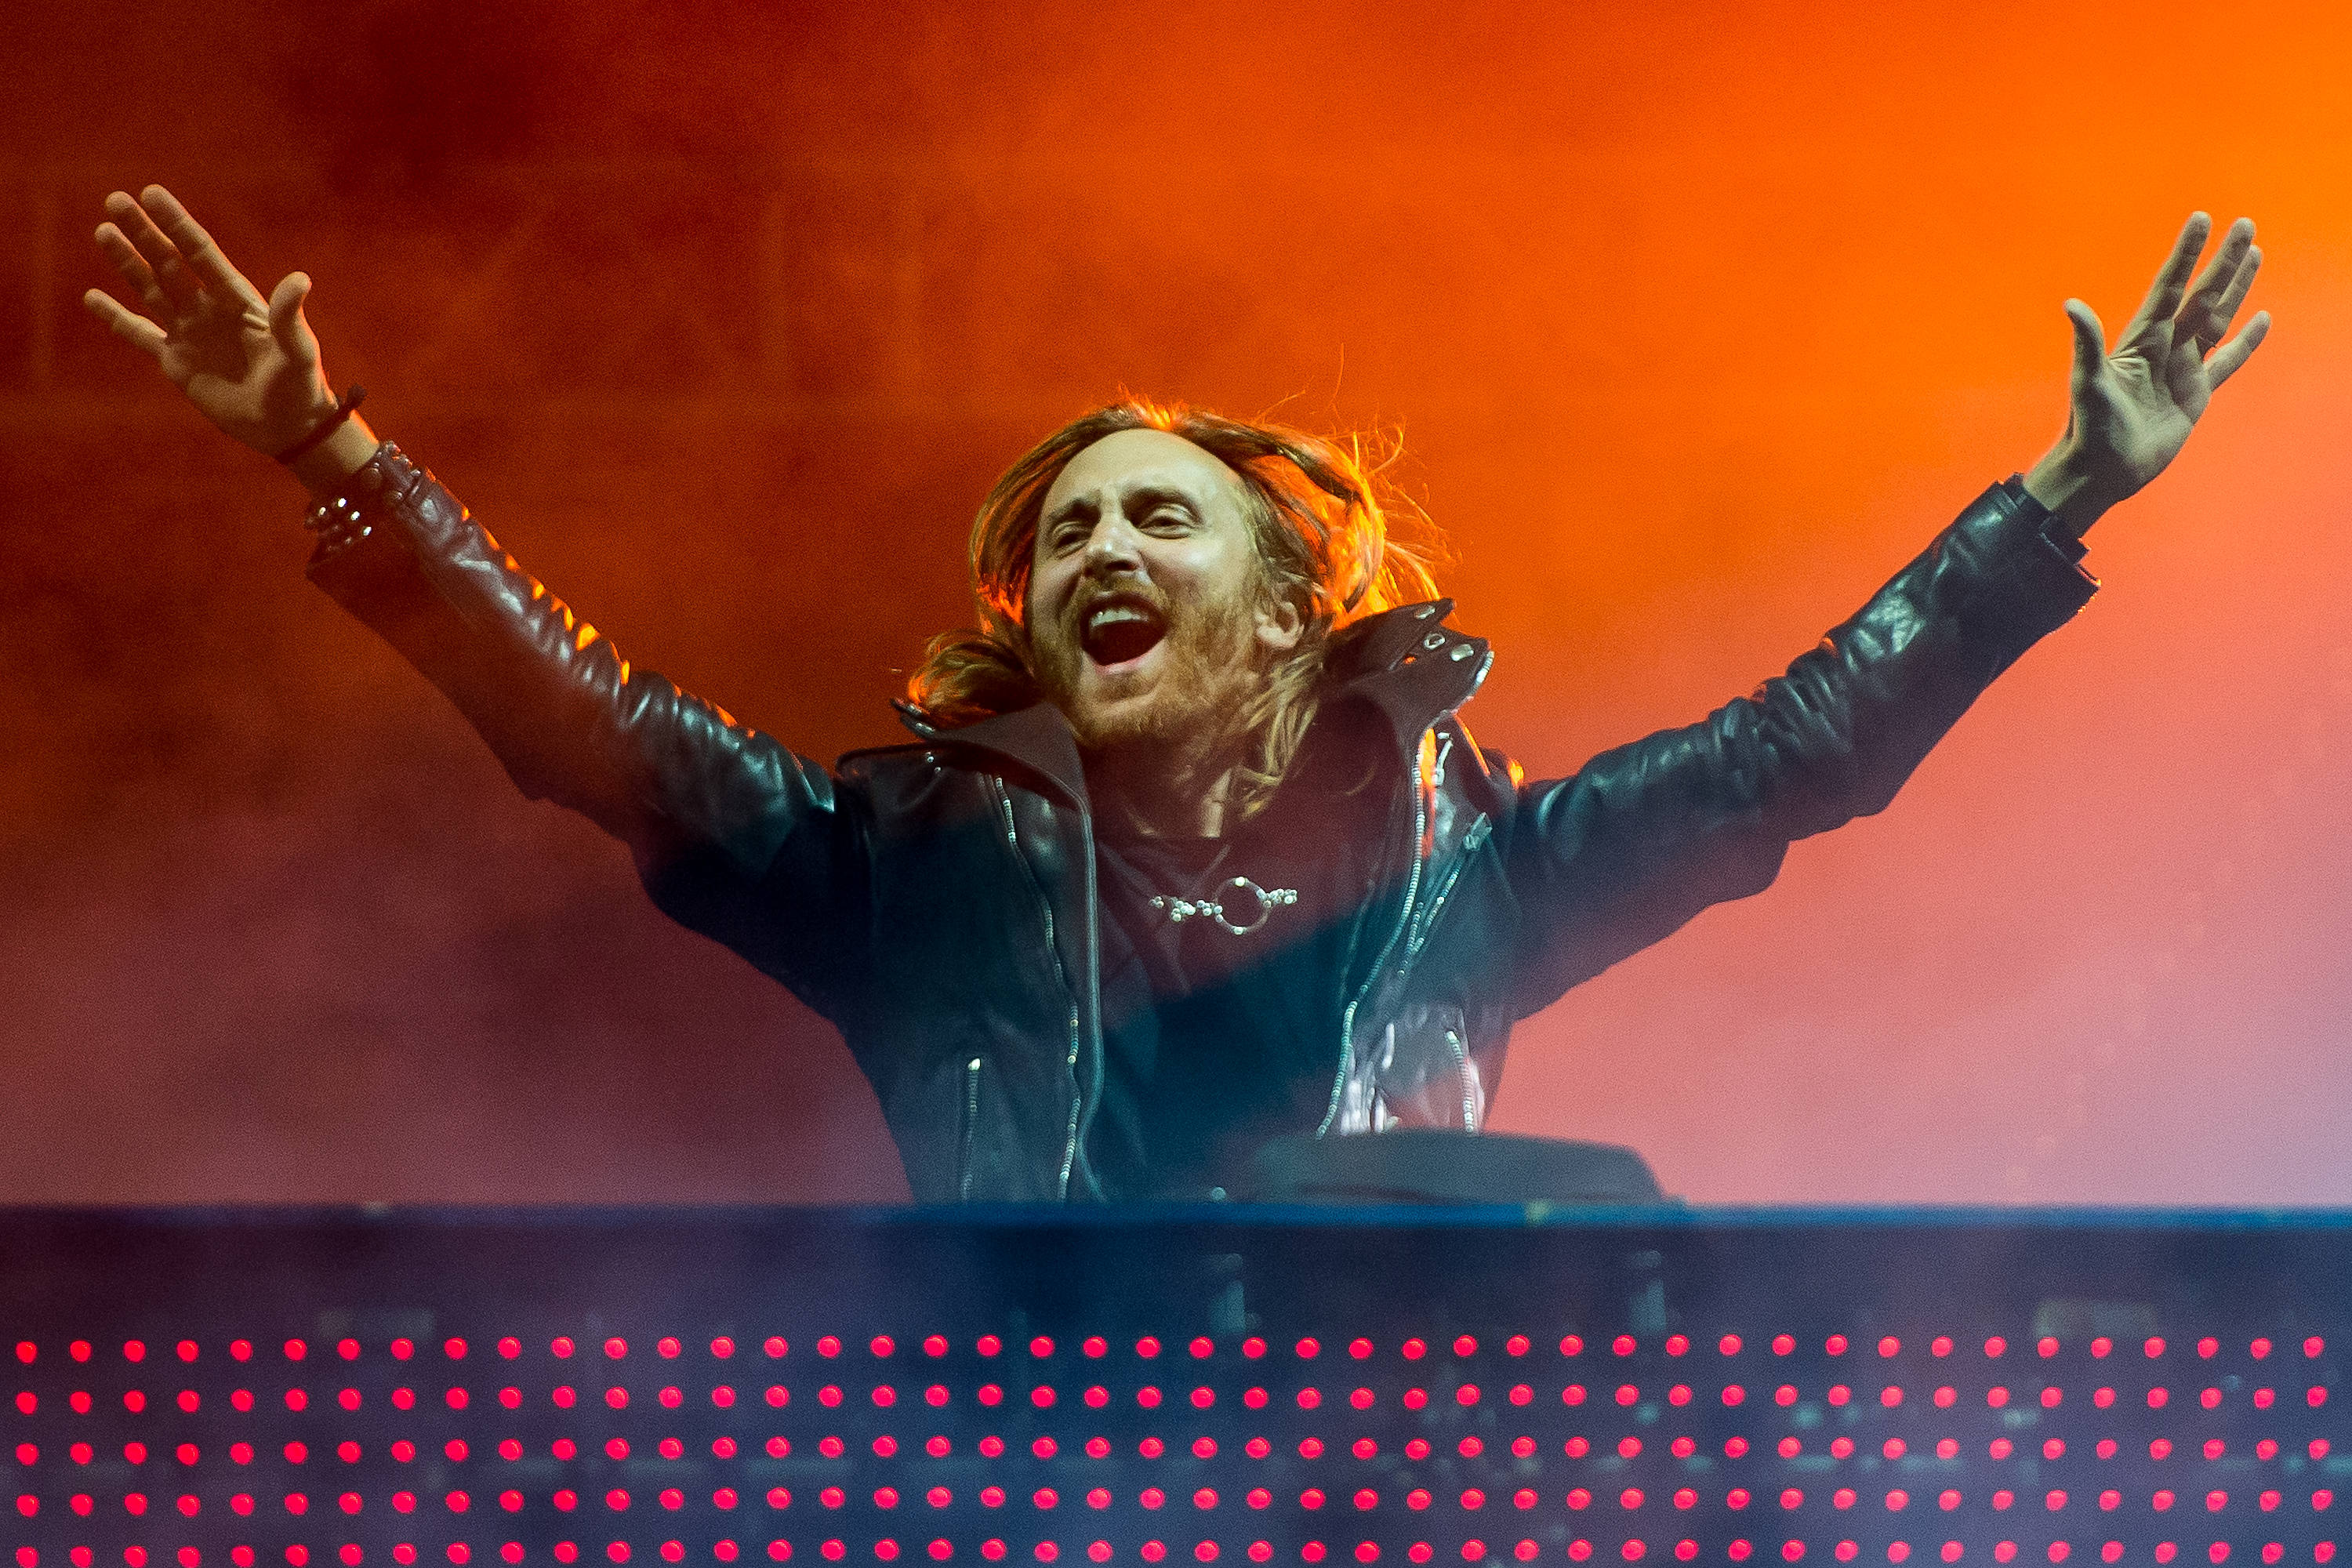 RIO DE JANEIRO, BRAZIL - SEPTEMBER 13: DJ David Guetta performs on stage during a concert in the Rock in Rio Festival on Sept